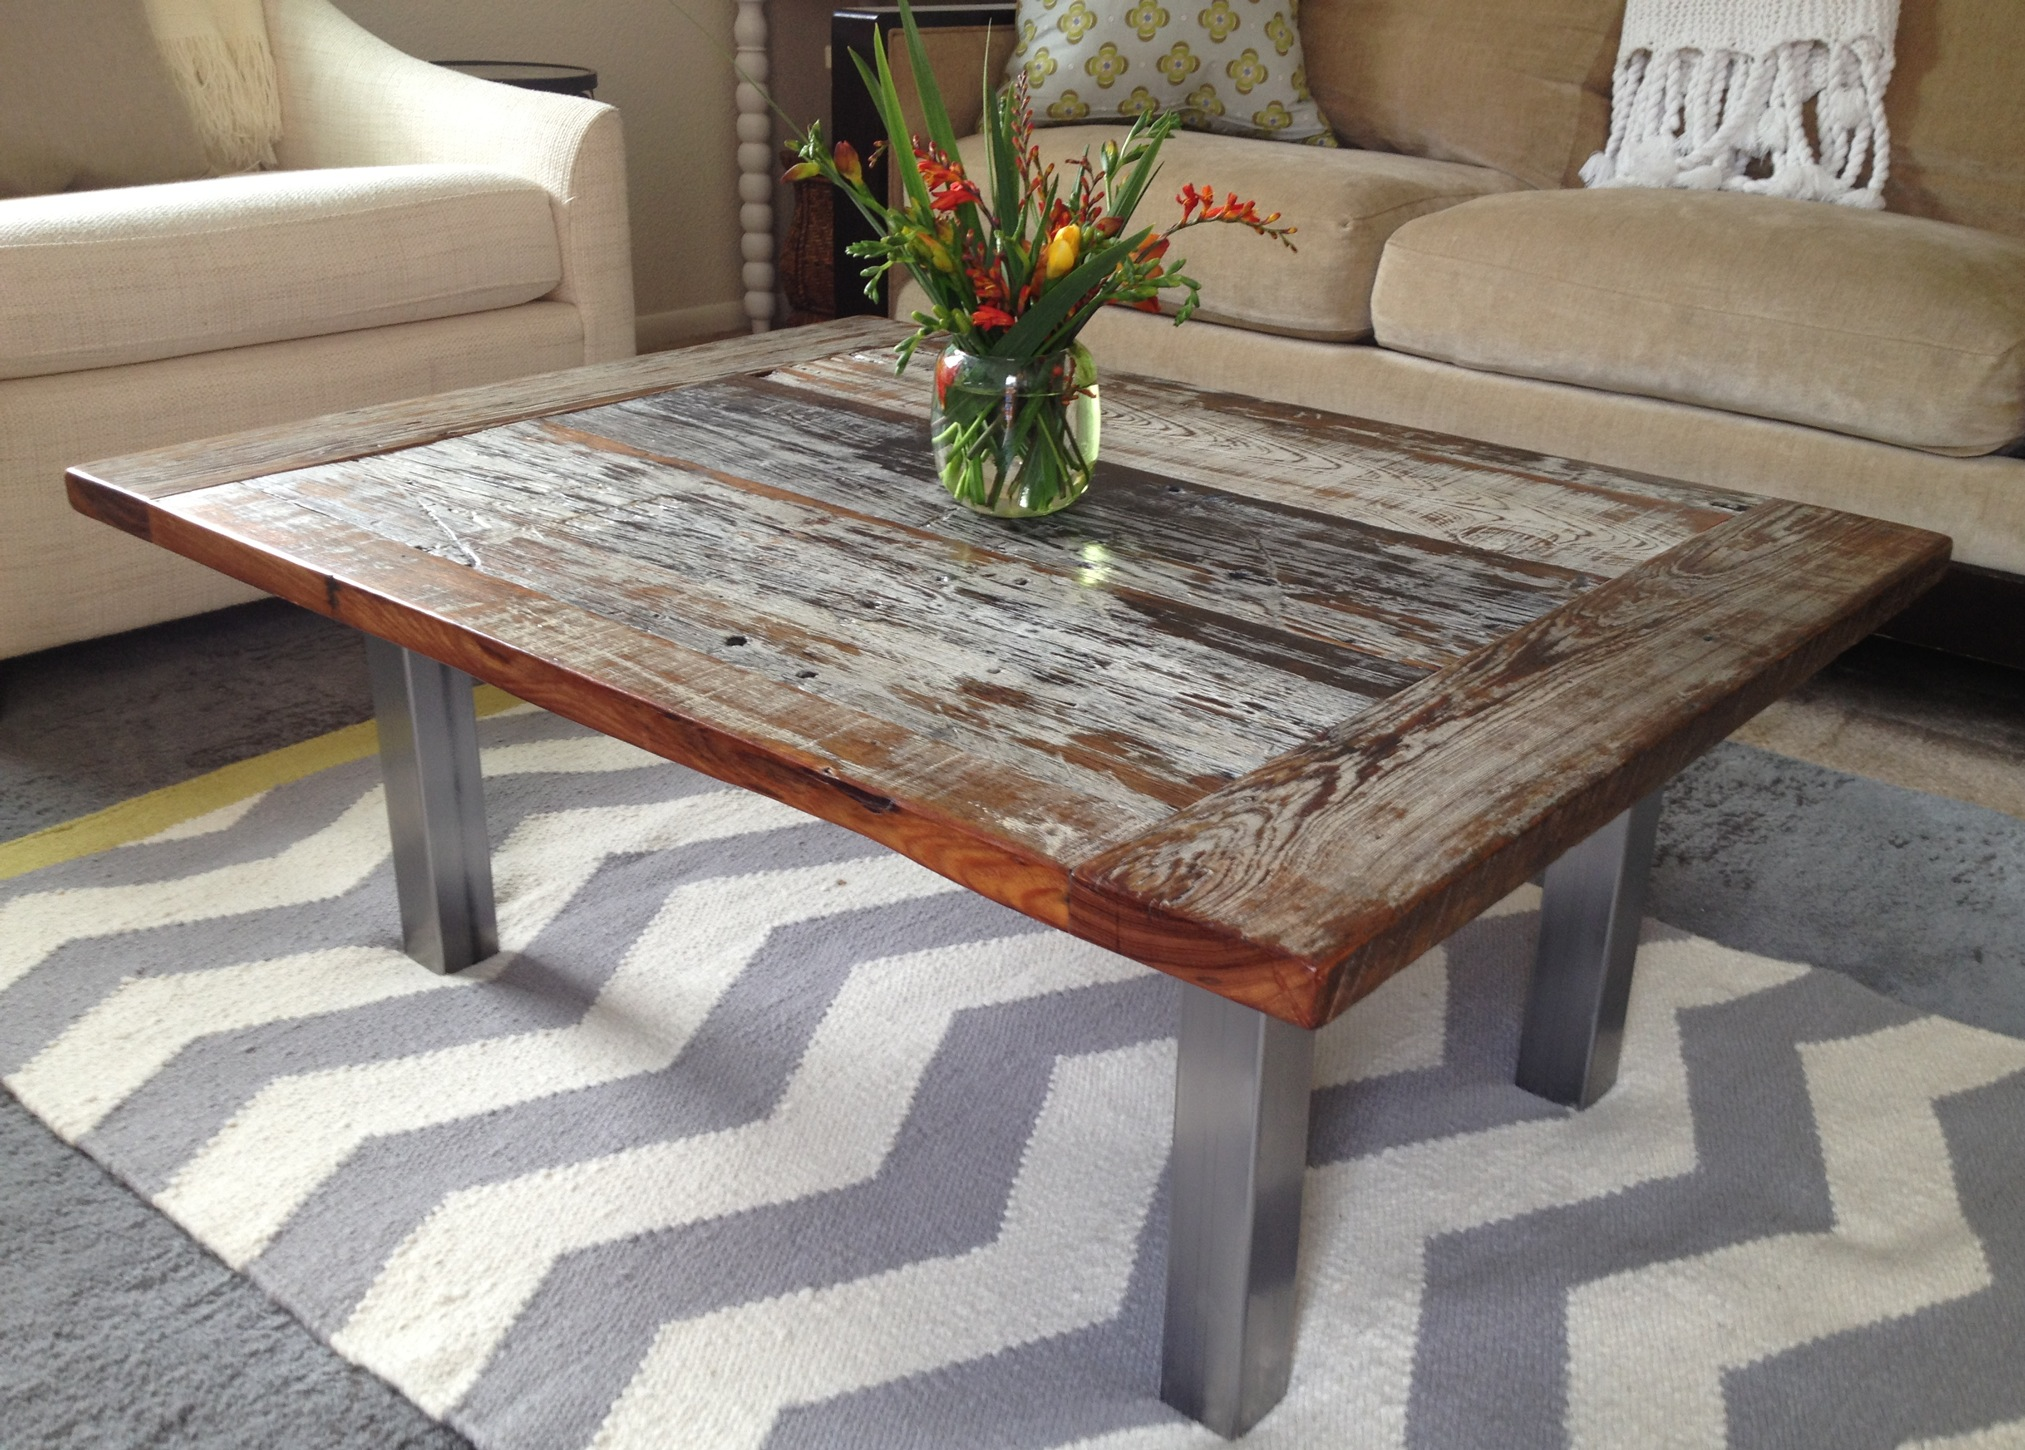 Reclaimed wood san diego the coastal craftsman reclaimed cypress coffee tabe 3 geotapseo Image collections